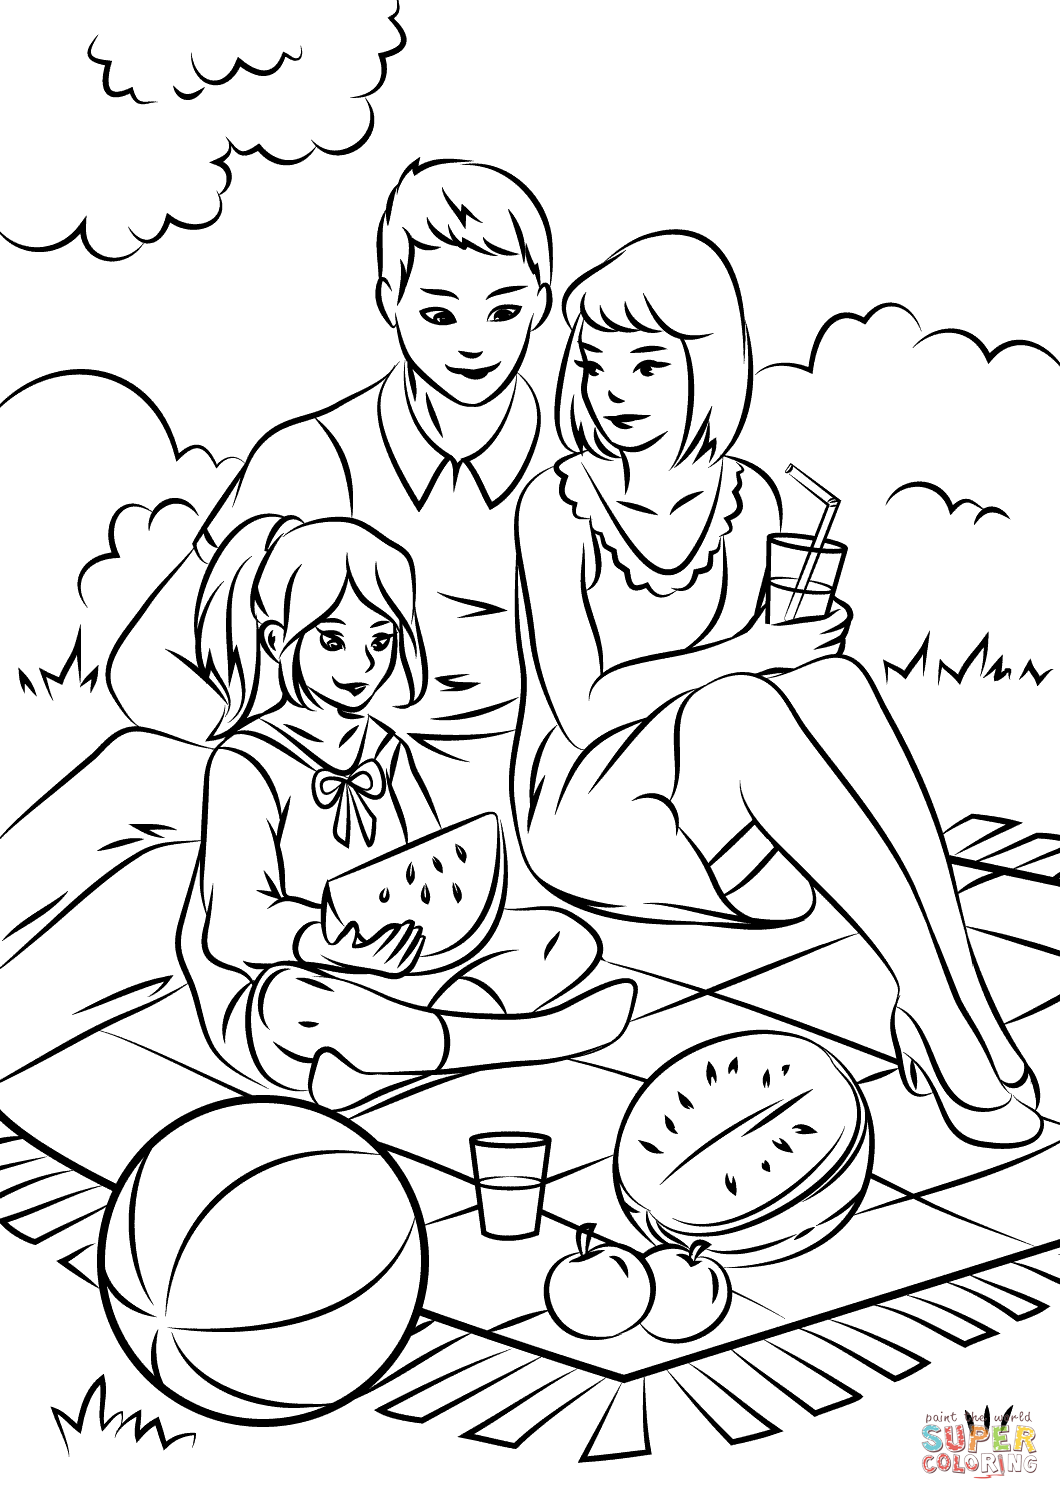 Family Picnic Coloring Page